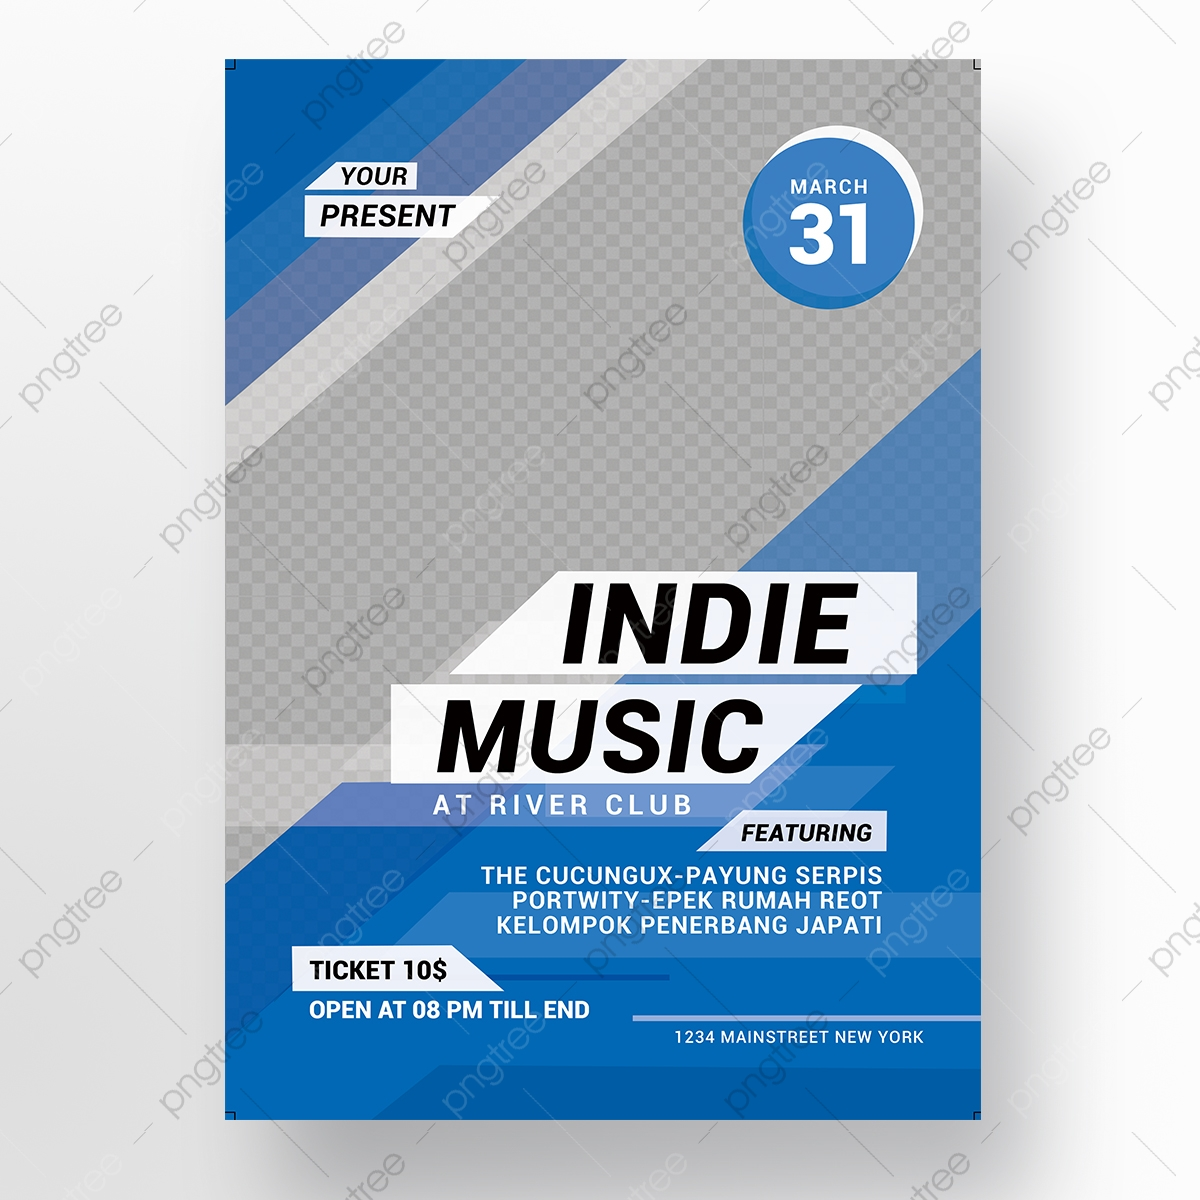 Indie Music Event Flyer Template For Free Download On Pngtree